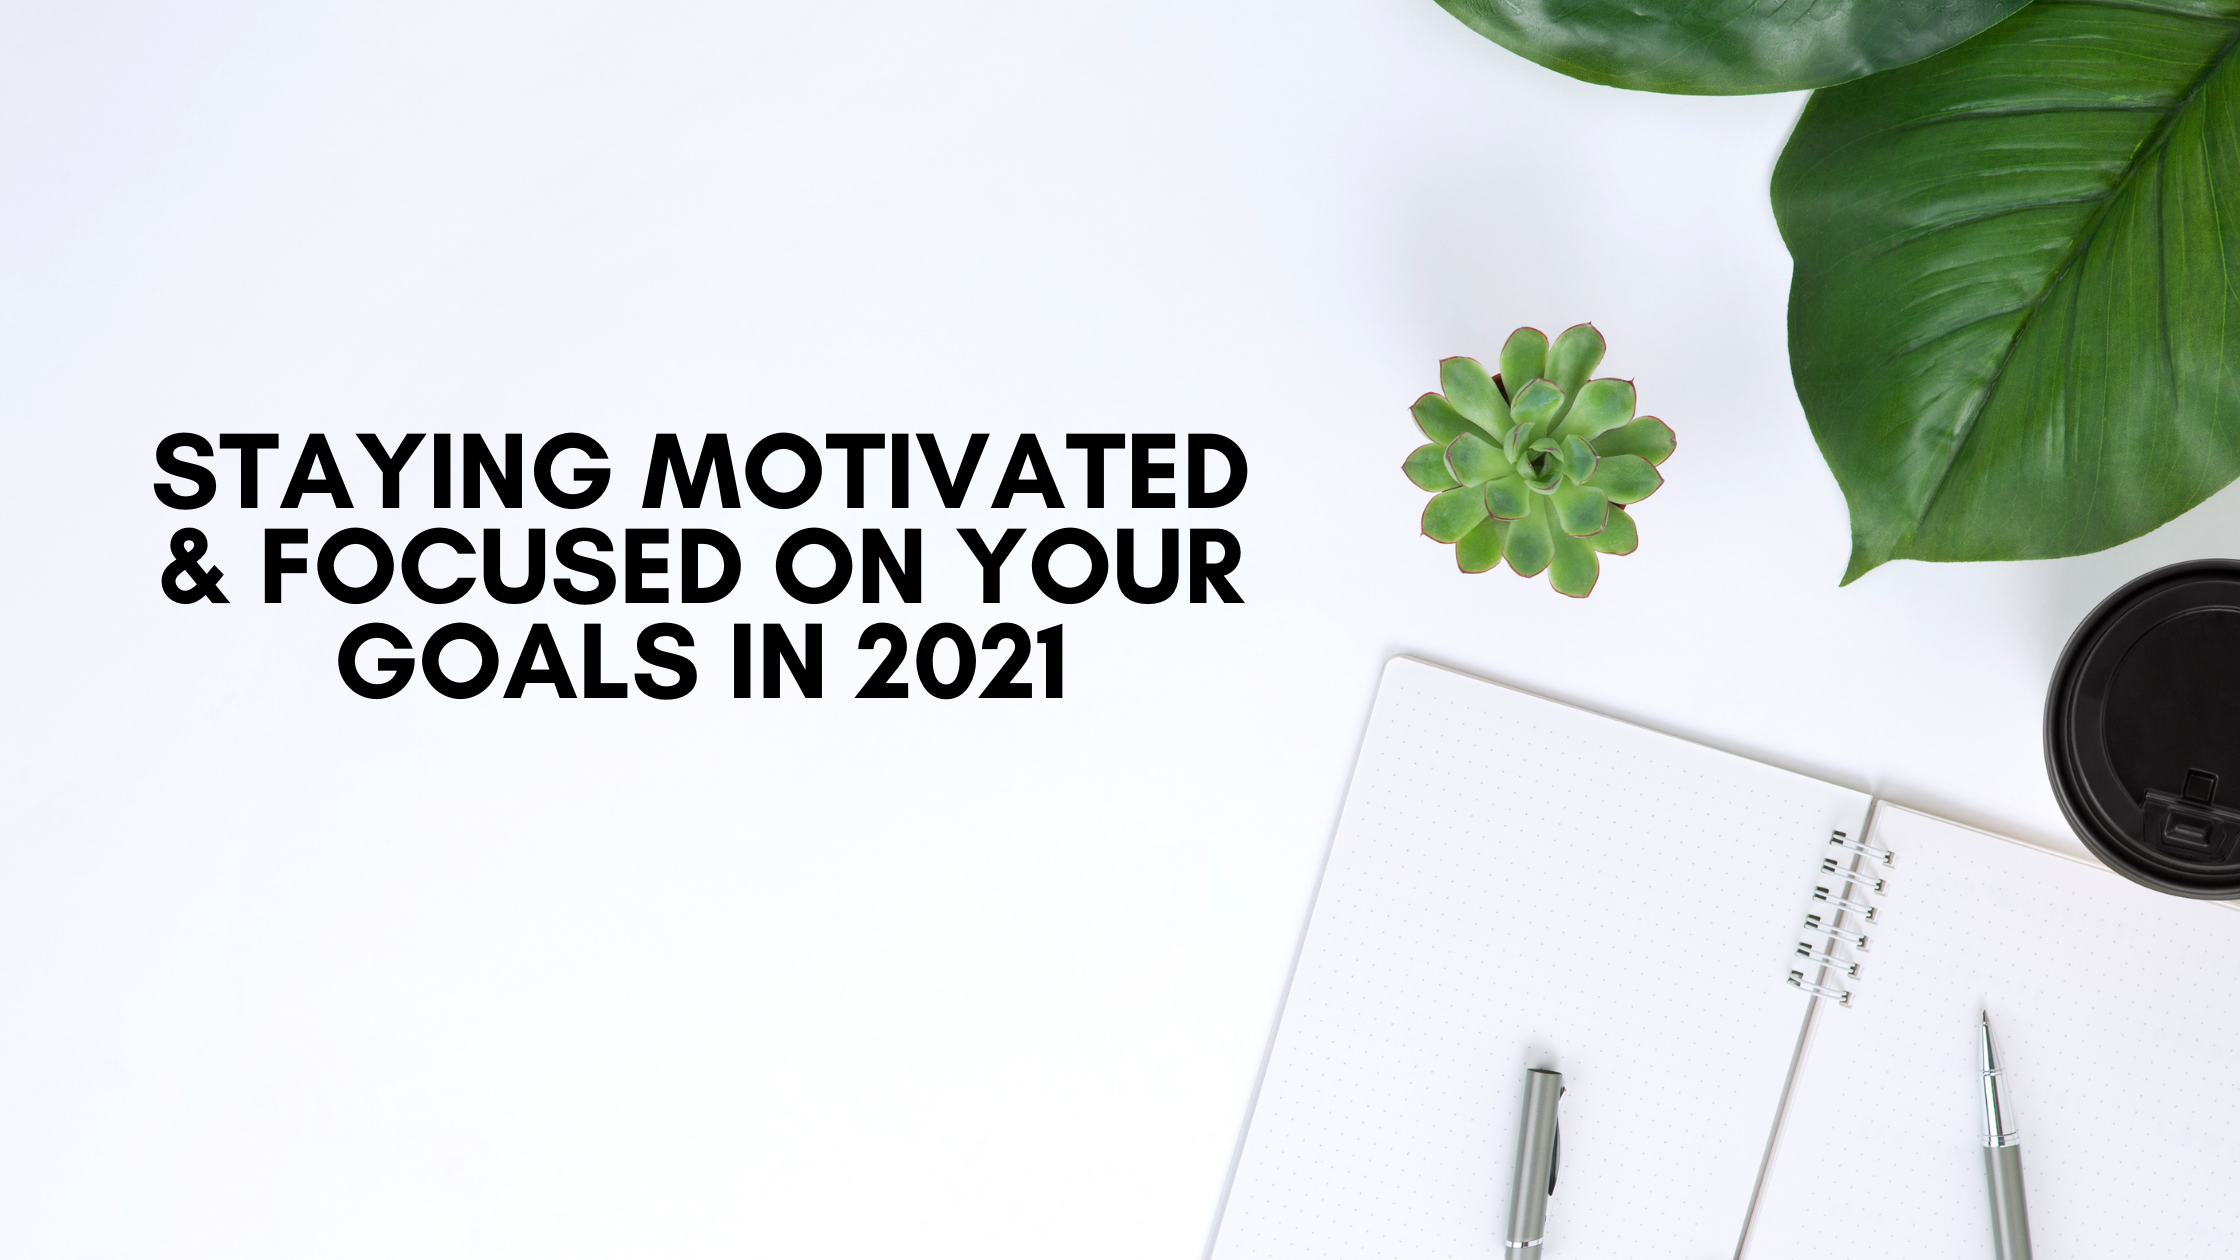 Staying Motivated & Focused On Your Goals In 2021